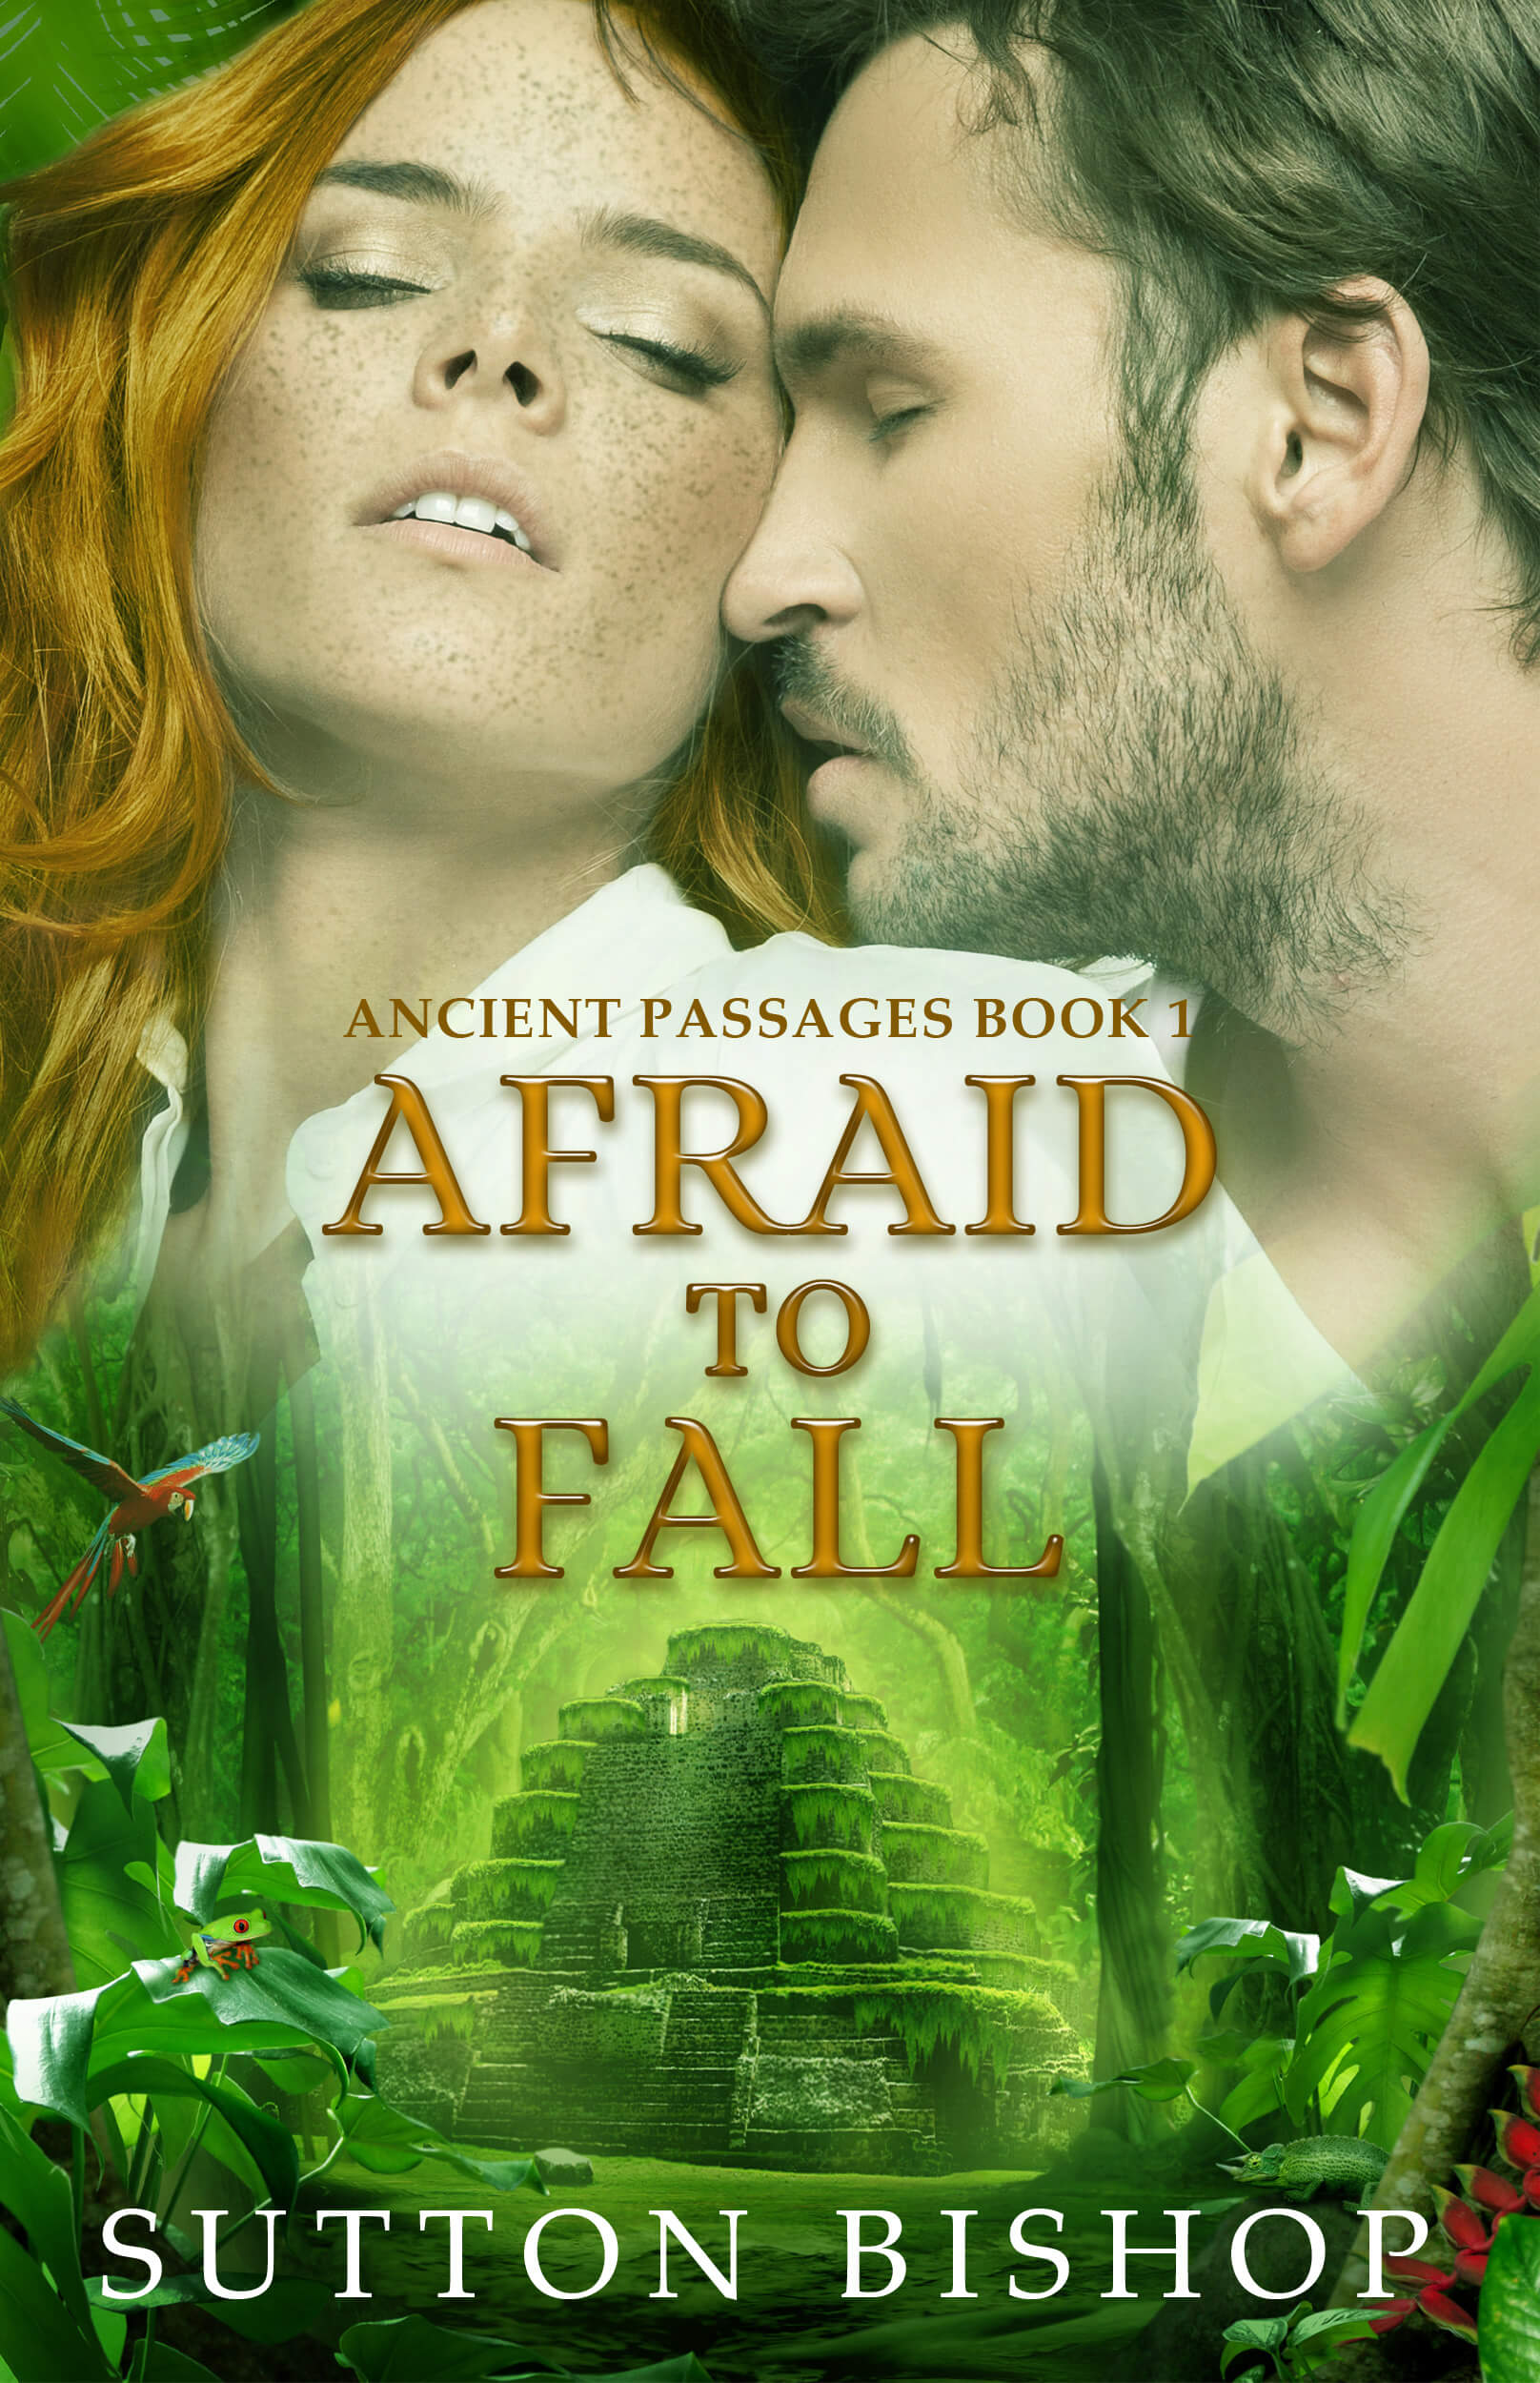 Afraid to Fall (Ancient Passages, #1) by Sutton Bishop